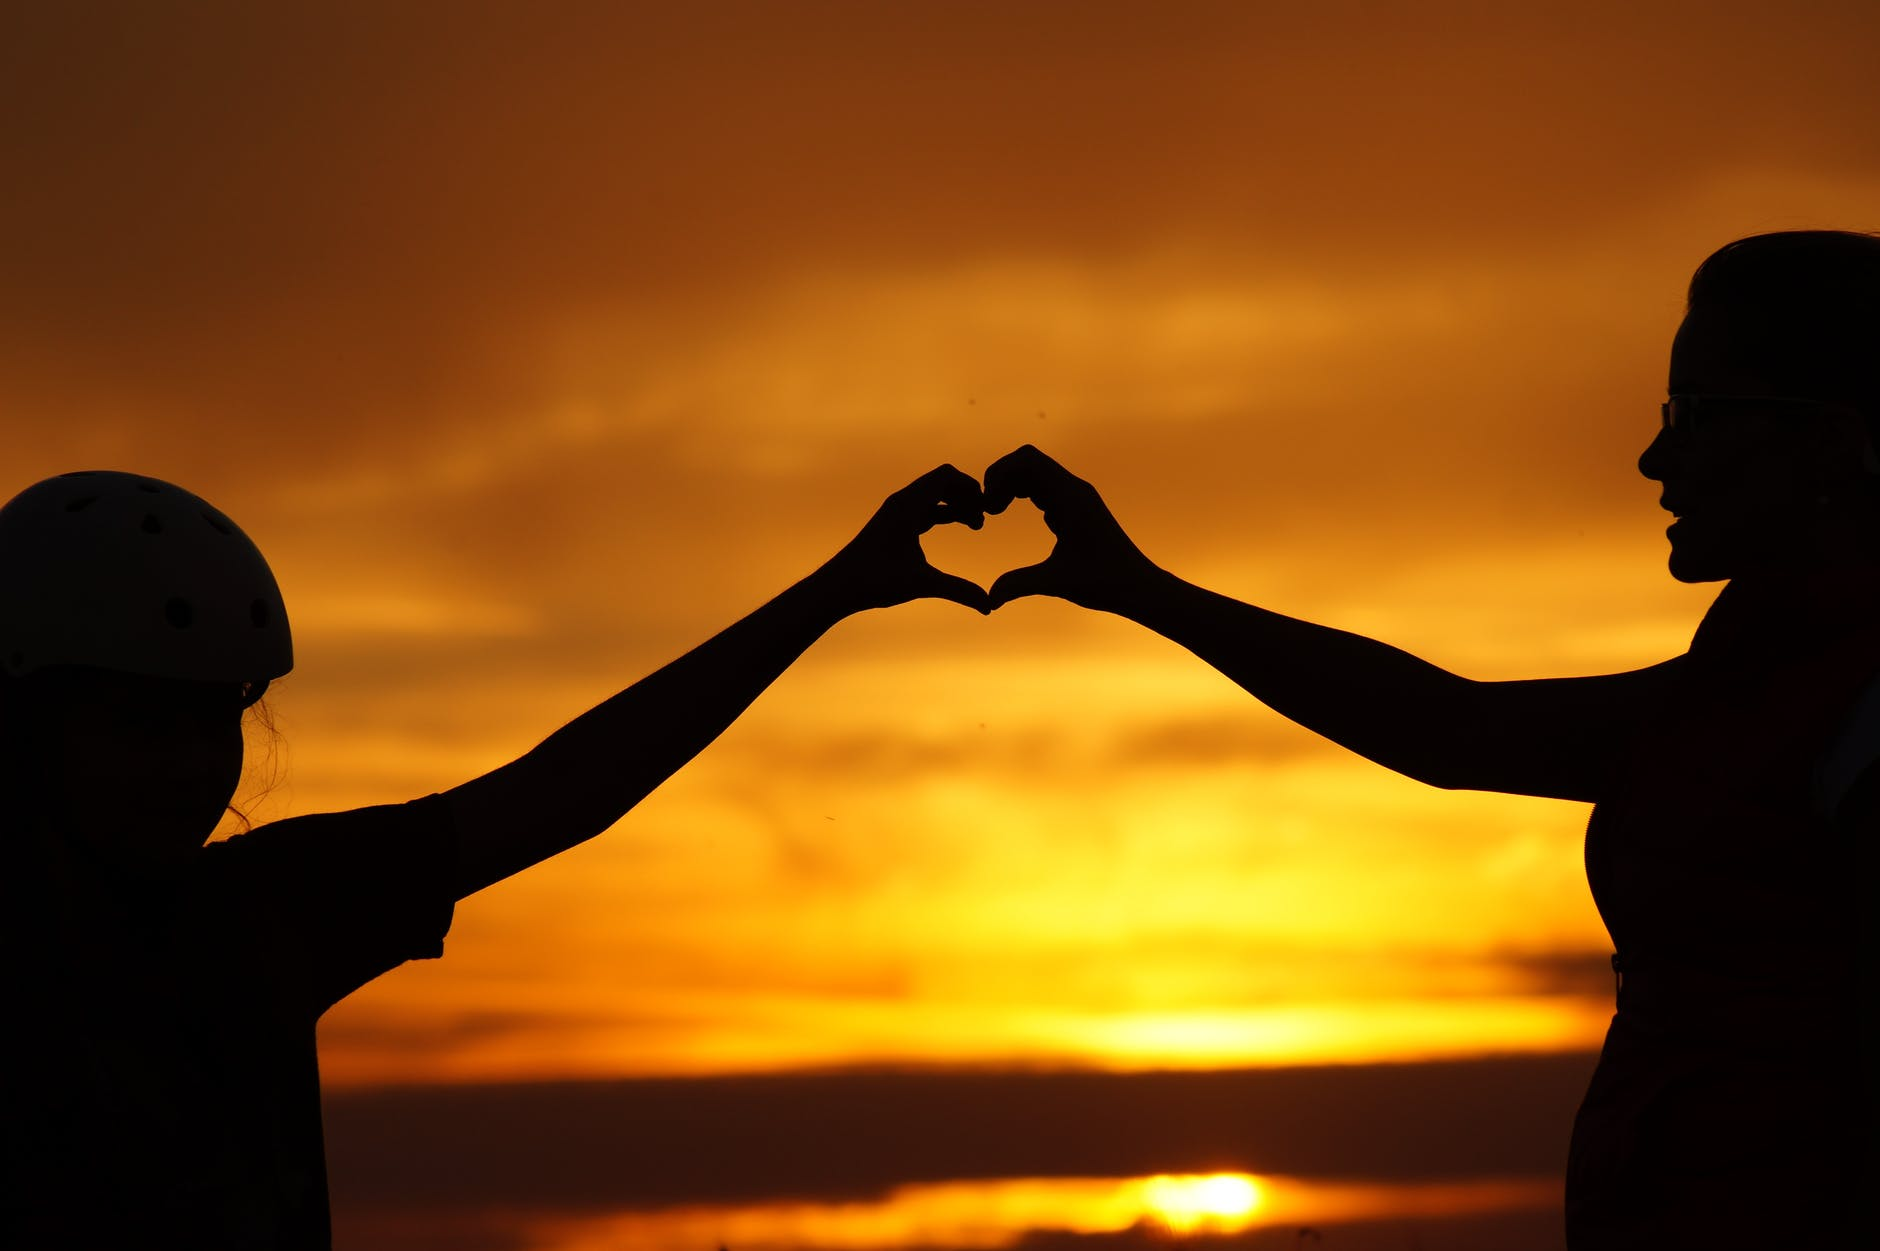 silhouette of child hands touching a parent's hands against sunset sky forming a heart